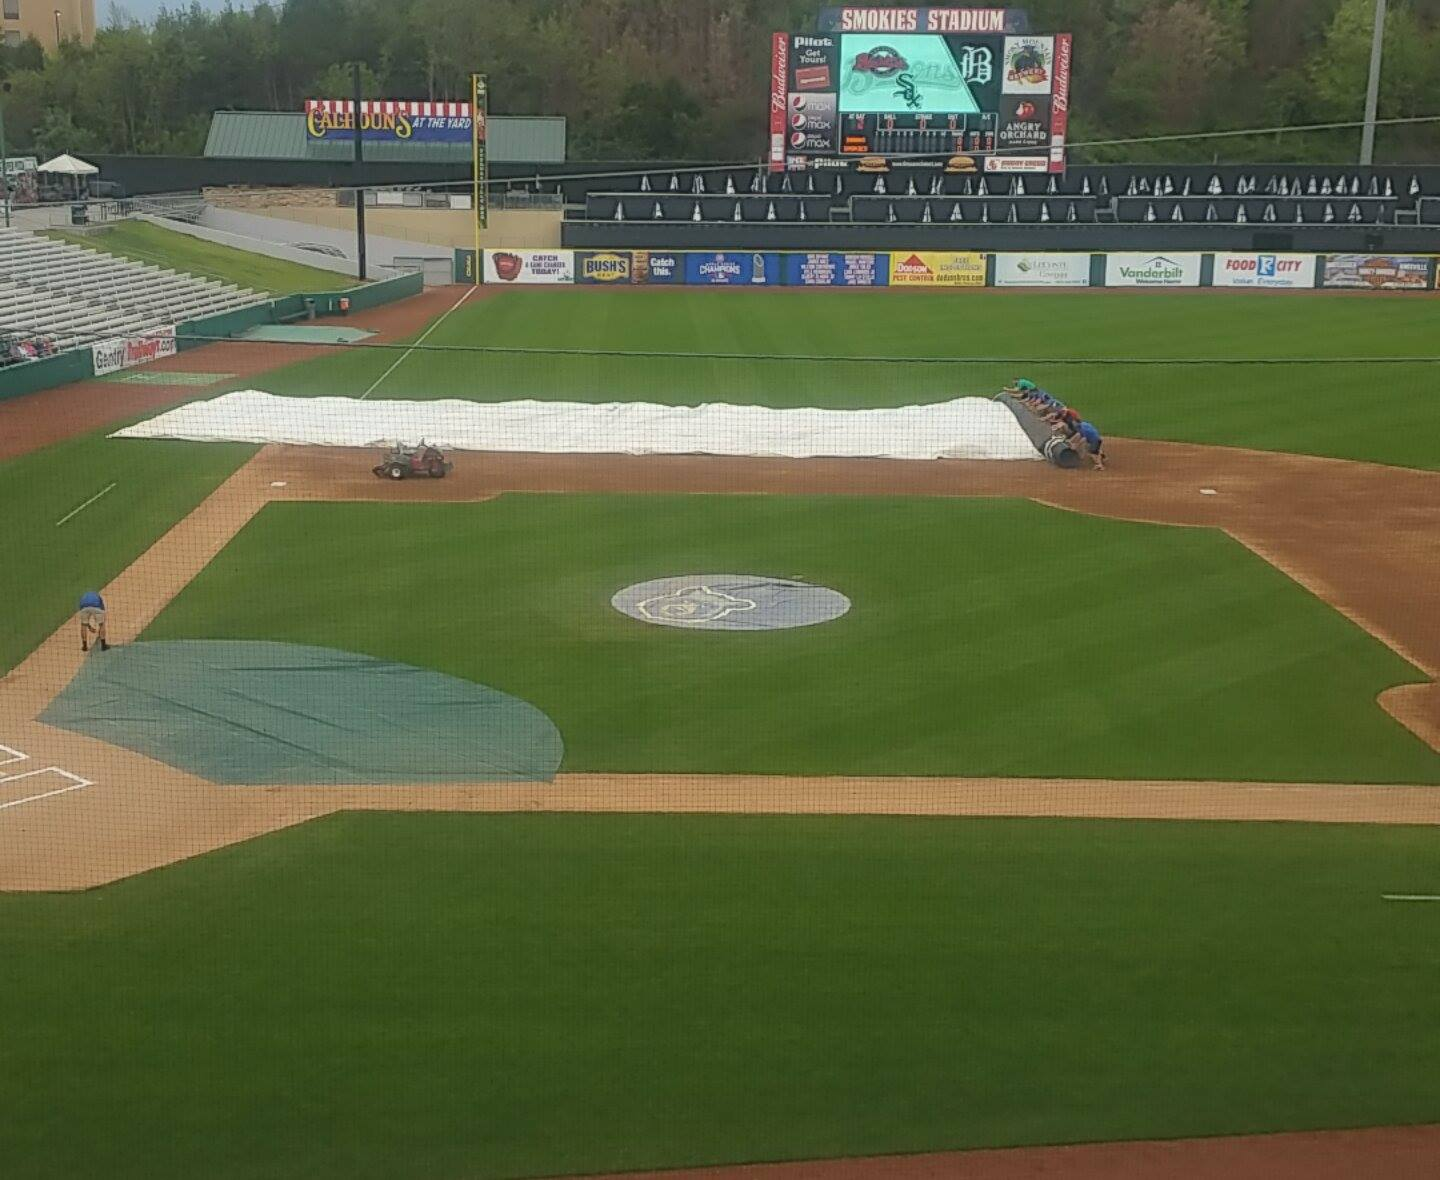 Smokies Stadium Tarp Roll Up